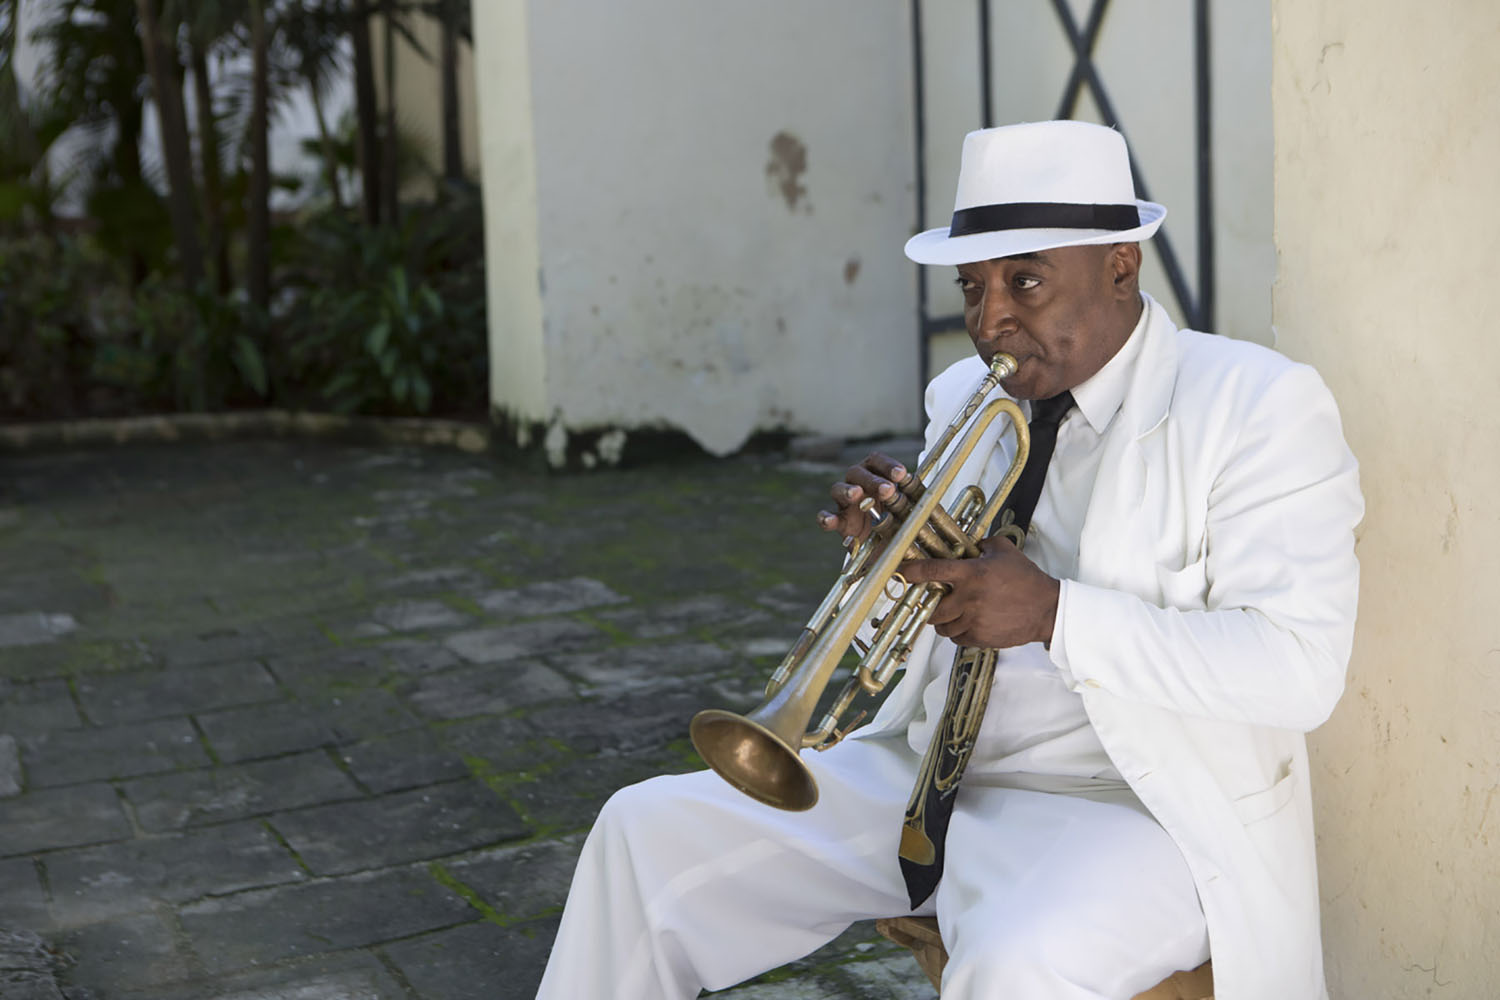 A cruise to Cuba is music to our ears!